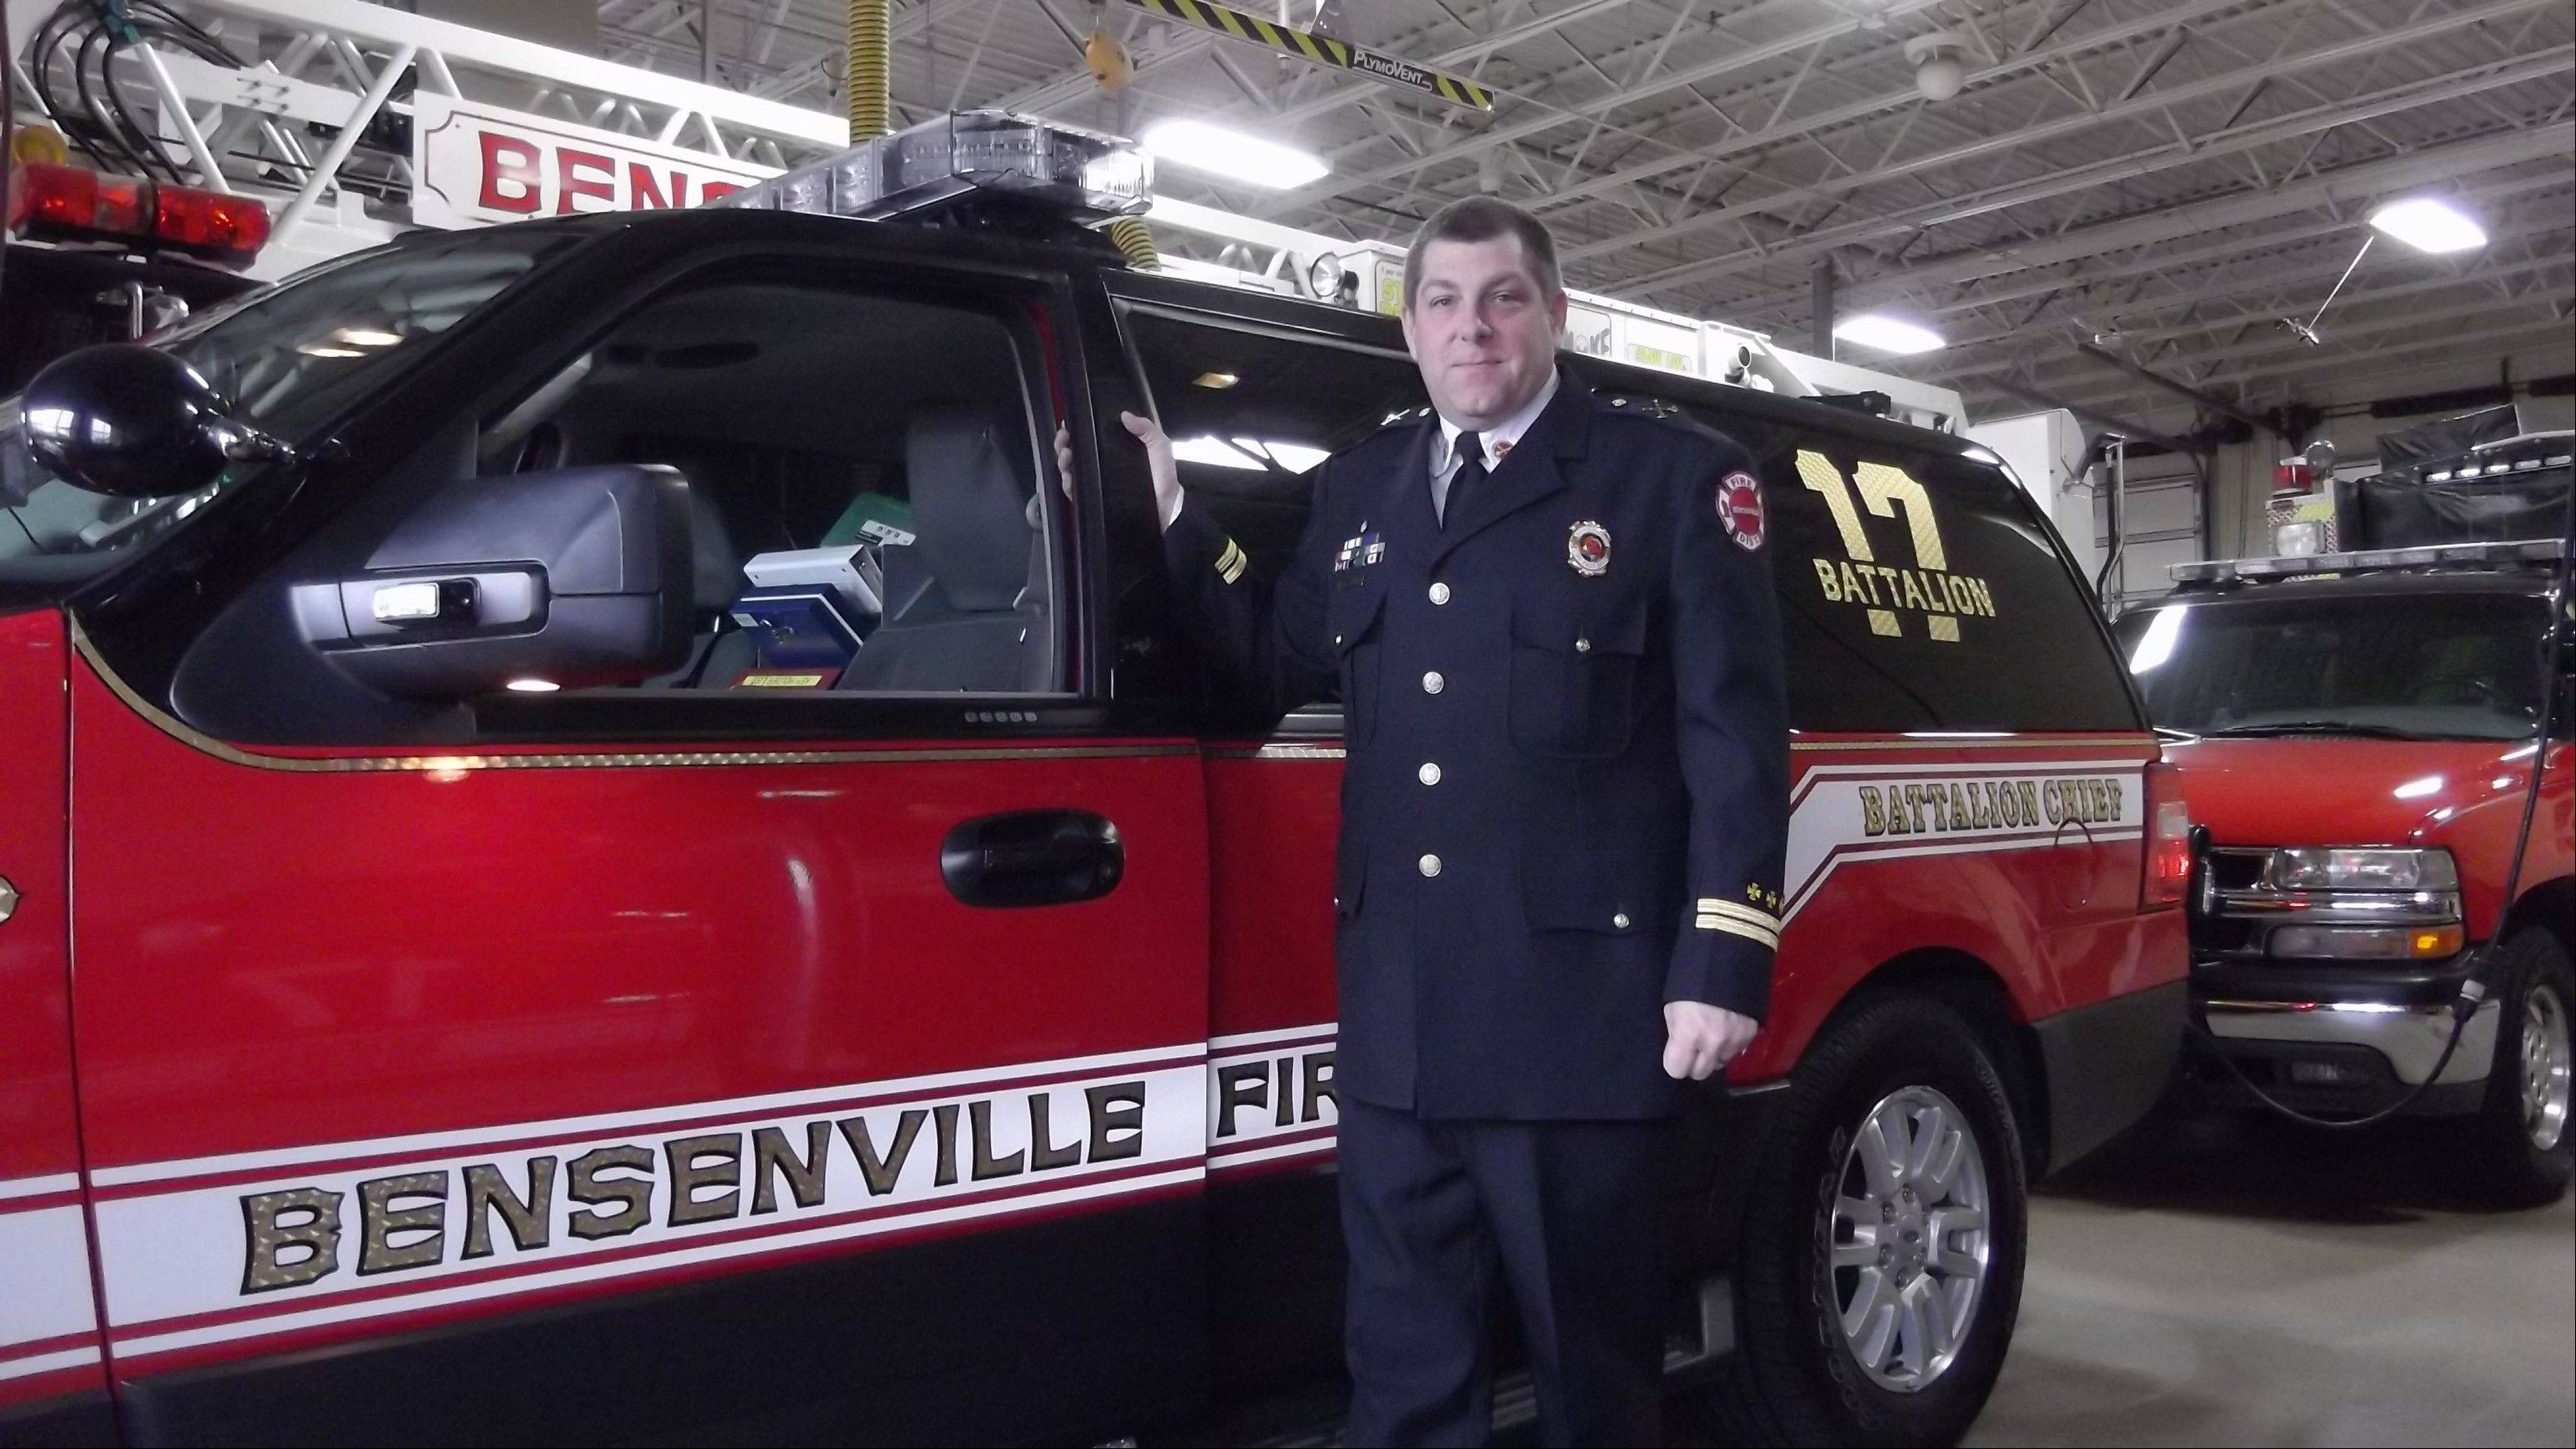 Longtime Bensenville Fire Protection District Batallion Chief Larry Karp is stepping down this month to become chief of a small fire department in Washington.